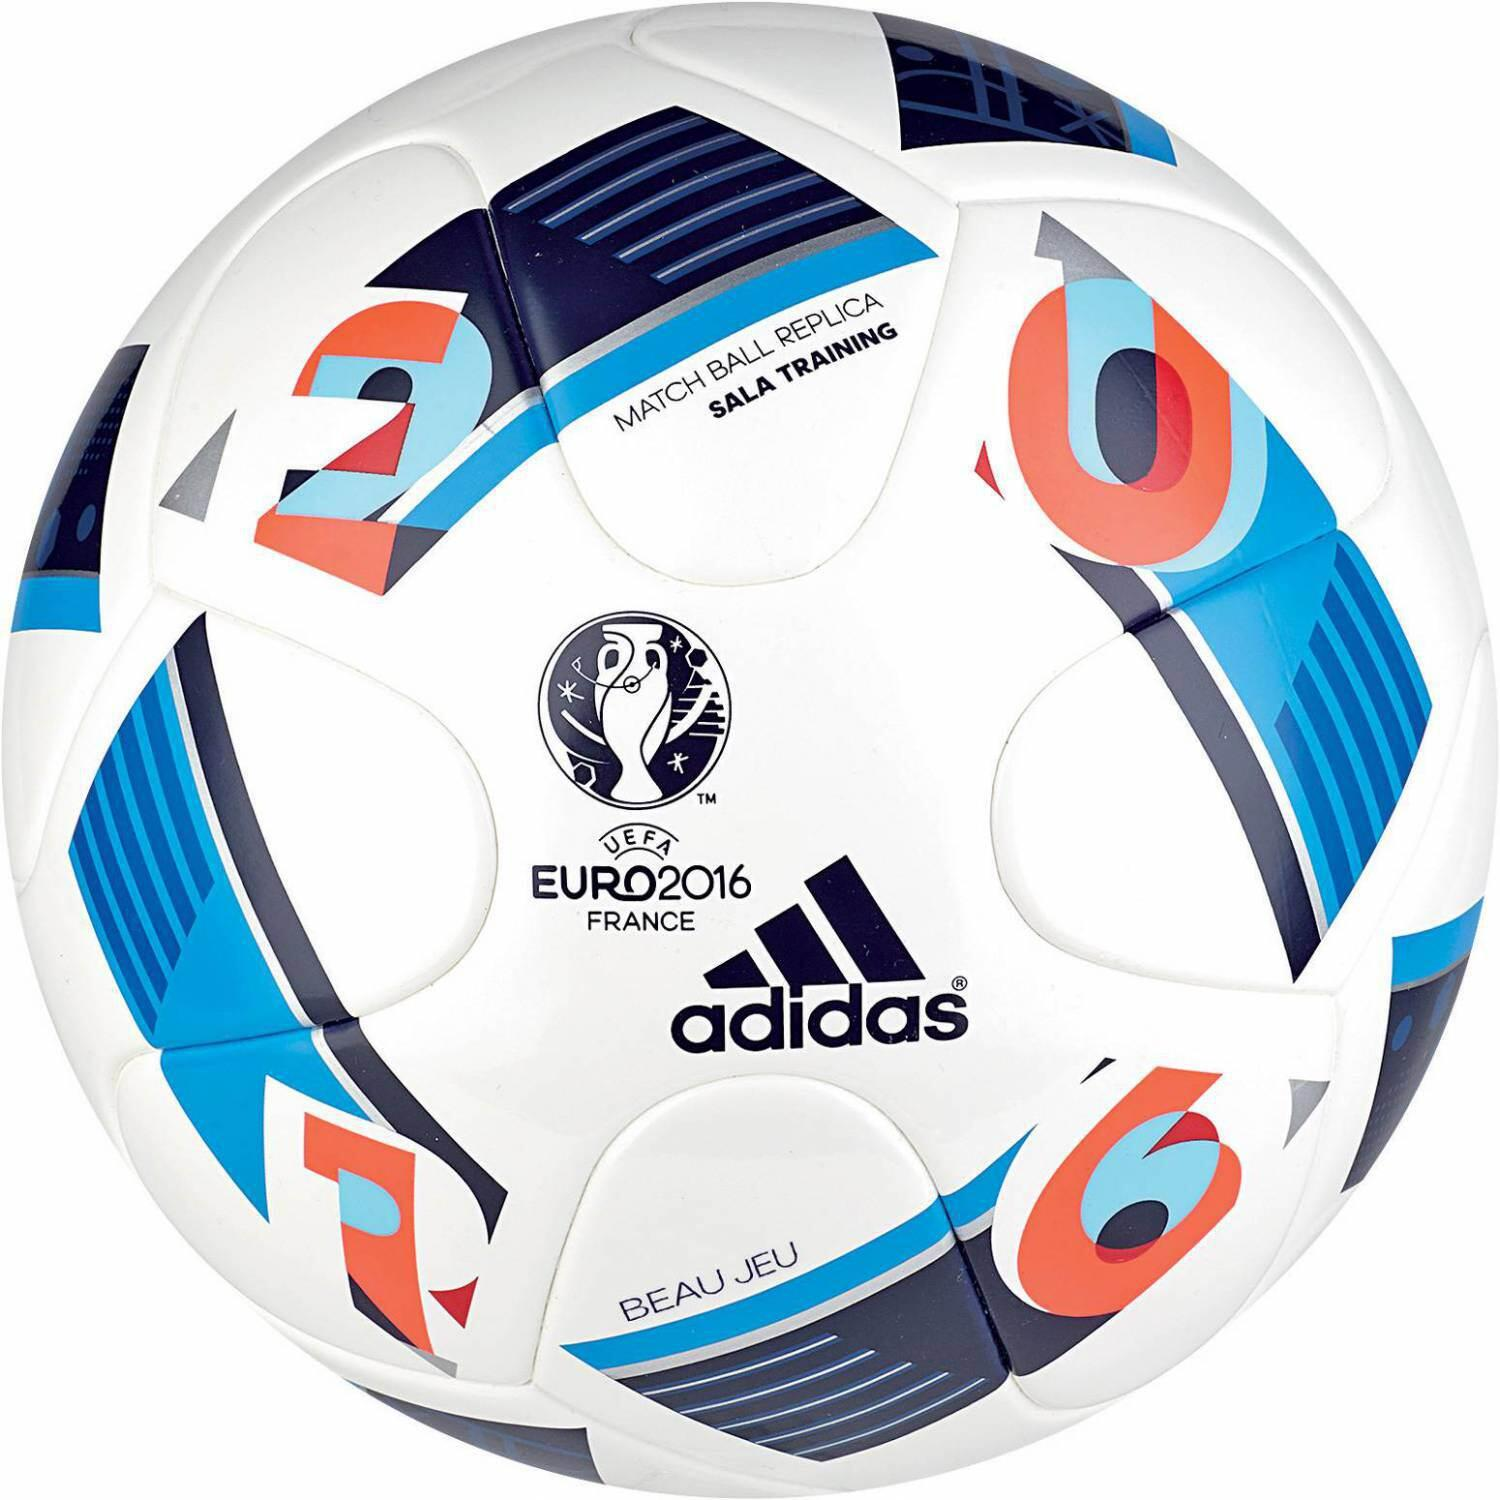 adidas-euro-2016-sala-training-futsal-fu-szlig-ball-gr-ouml-szlig-e-futs-white-bright-blue-night